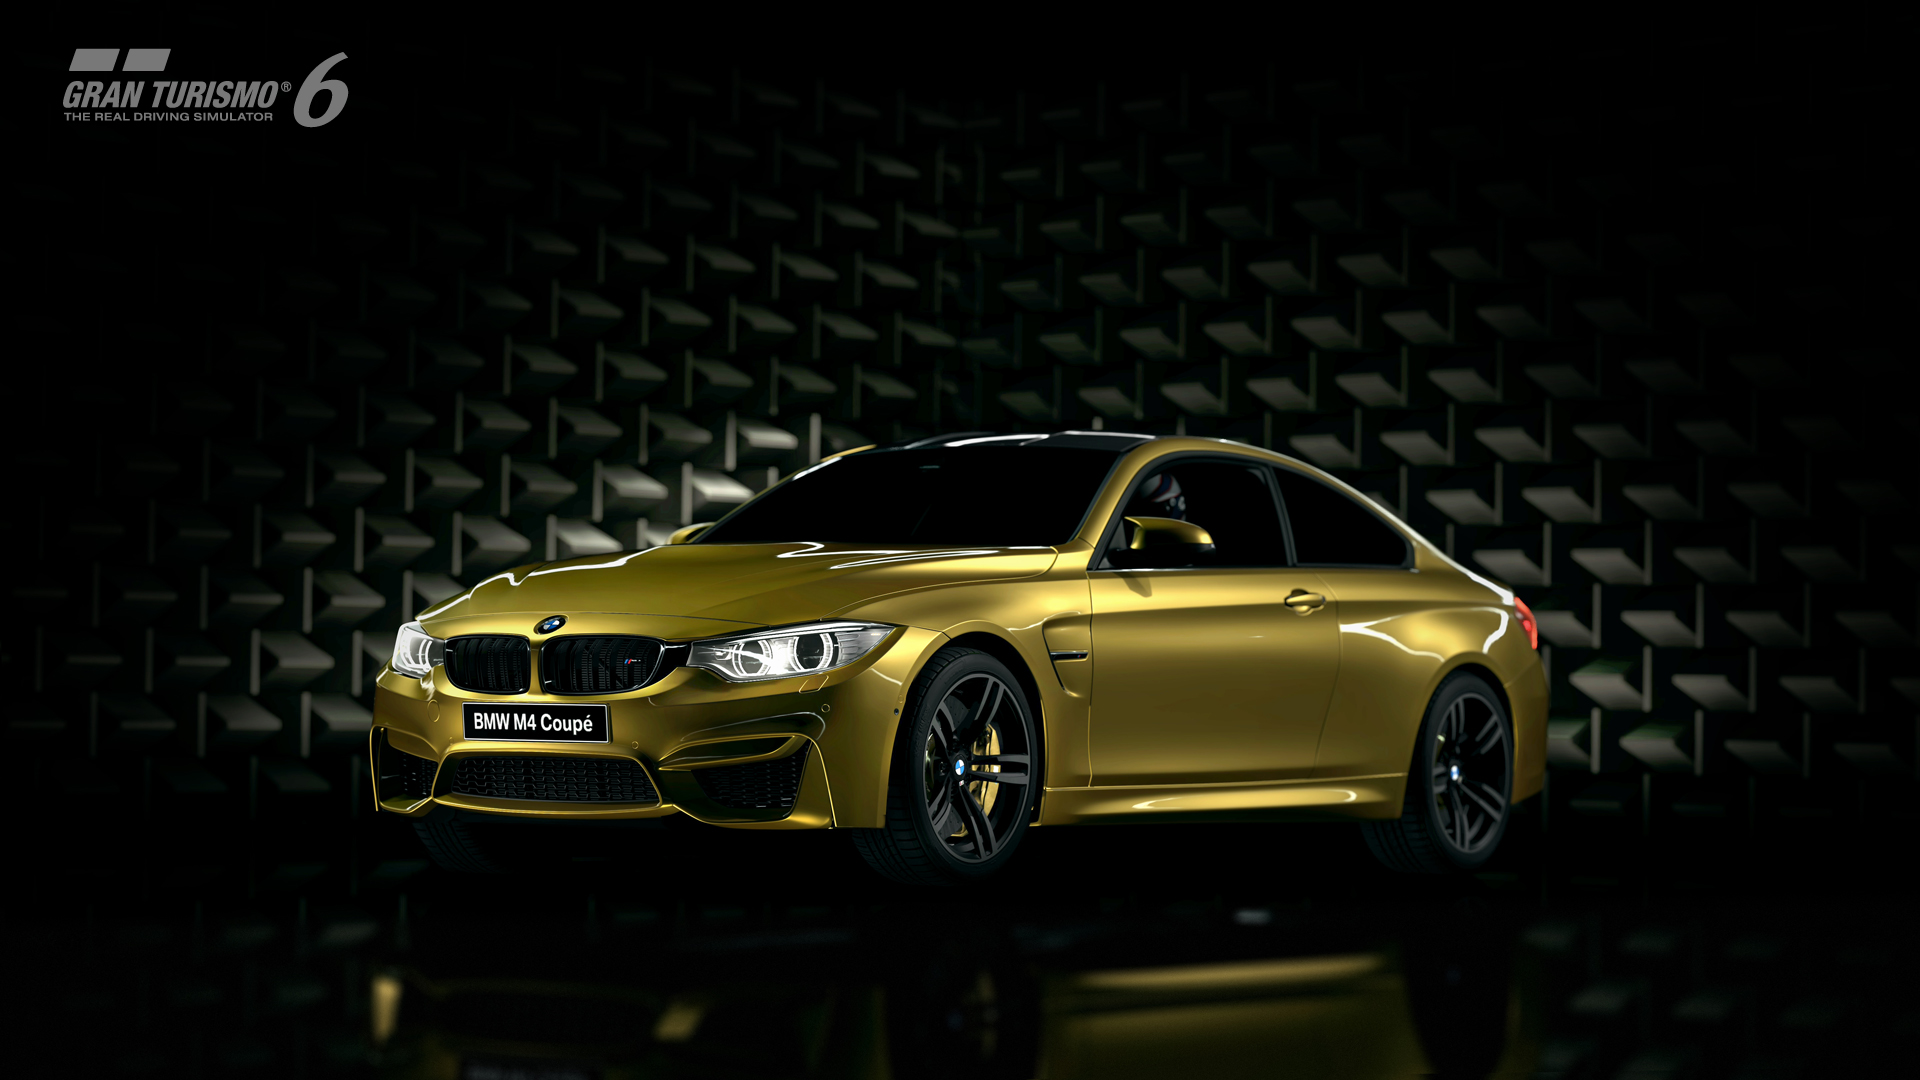 3d Hd Wallpapers For Laptop Bmw M4 Coup 233 Comes To Life In Gran Turismo 174 6 Gran